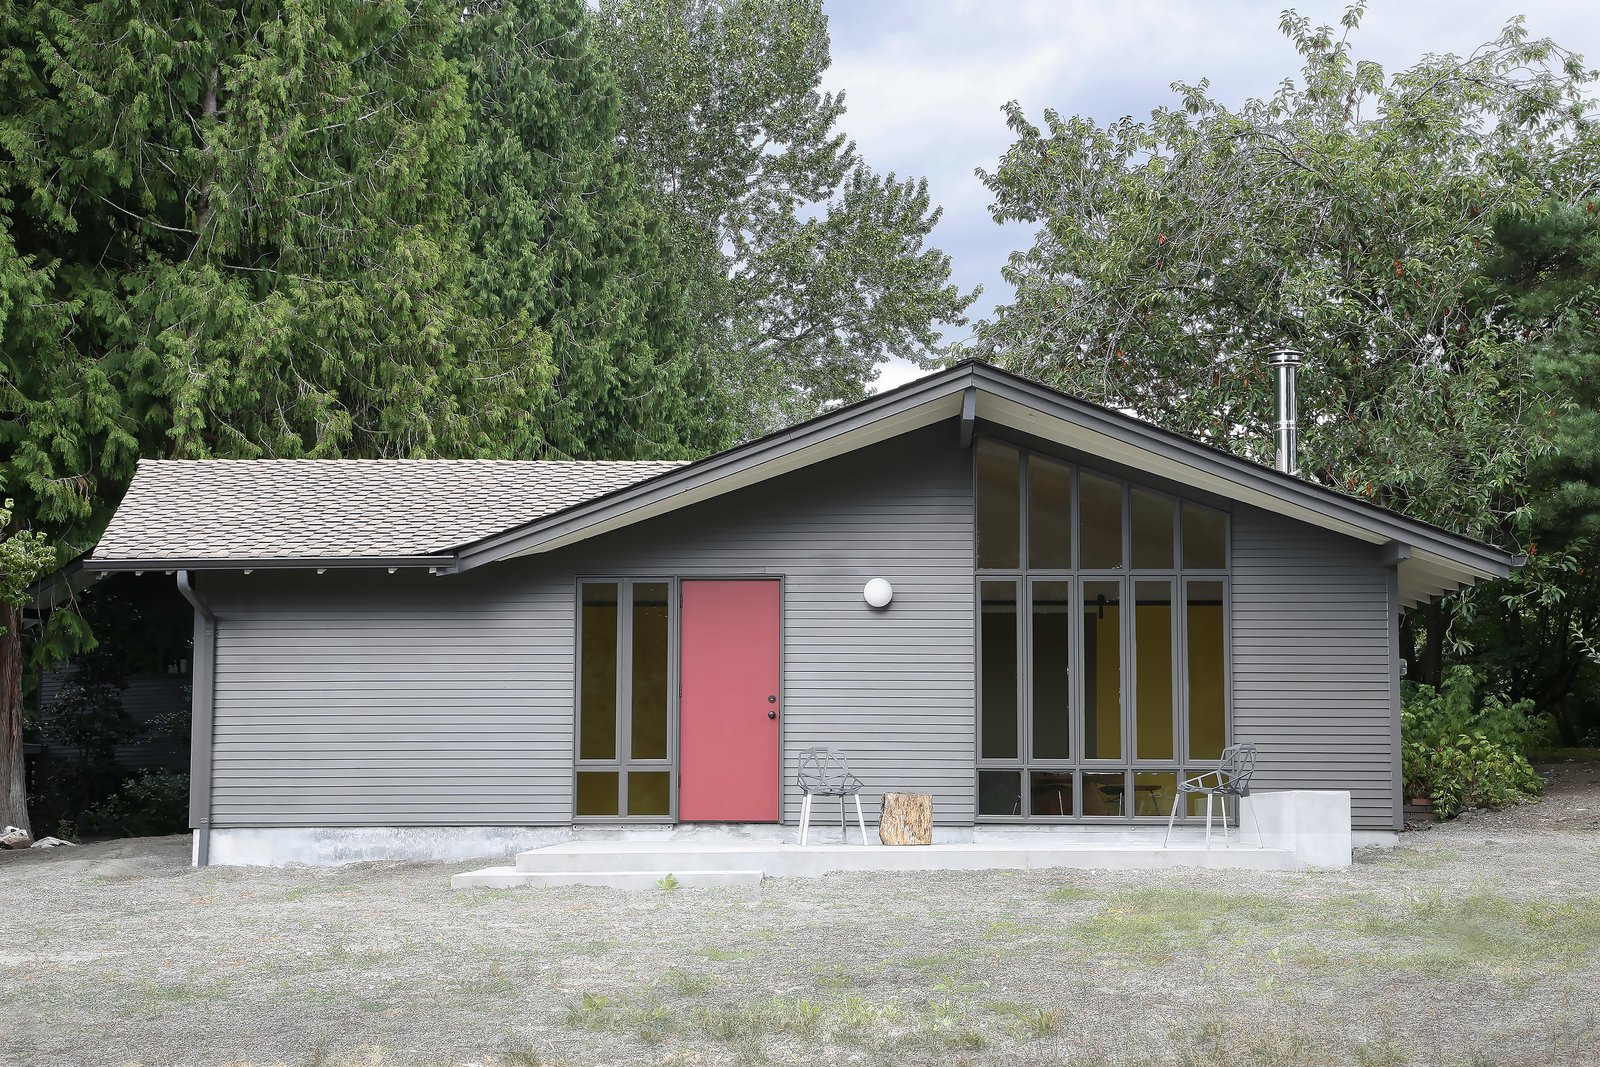 Exterior, Tiny Home Building Type, Shingles Roof Material, Wood Siding Material, and Gable RoofLine What was once a working stable, transformed into a modern refuge for work and play.   Photos from Stable Conversion